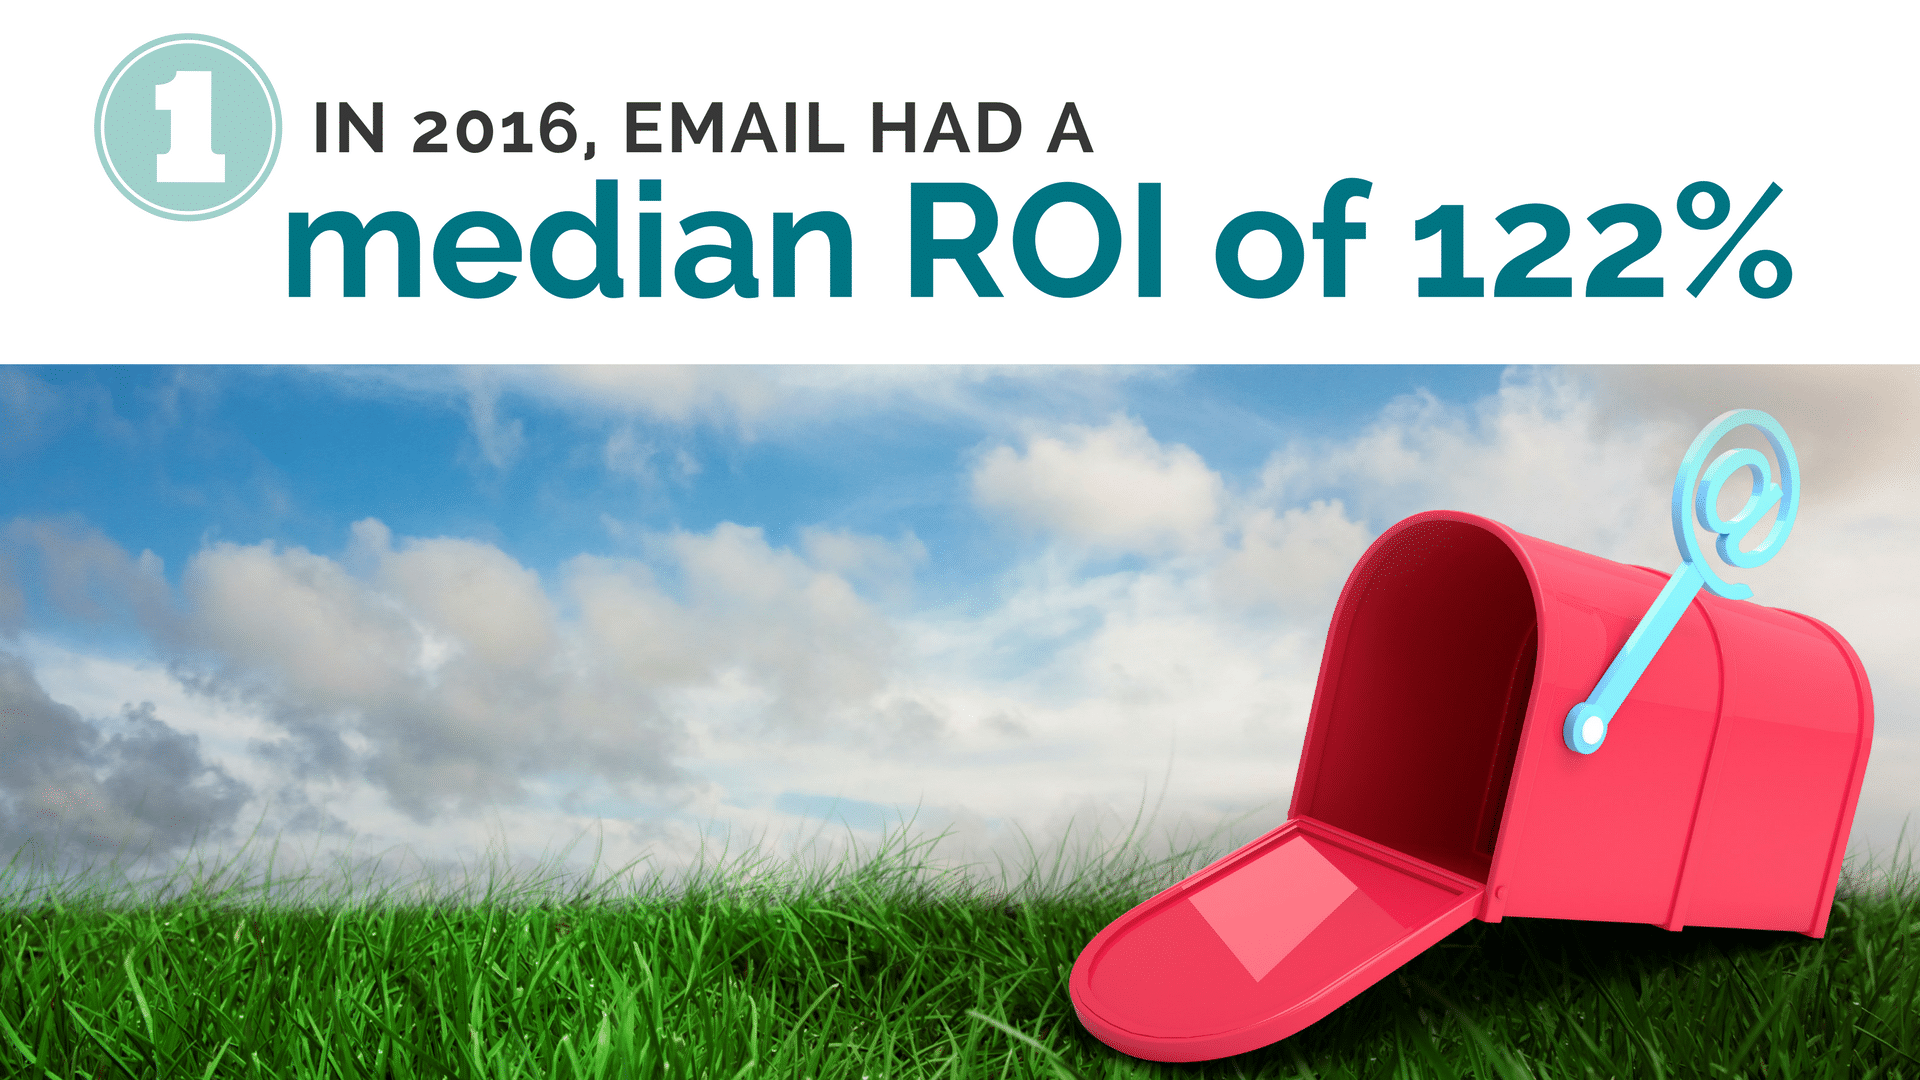 Video: 7 Fun Facts About Email Marketing